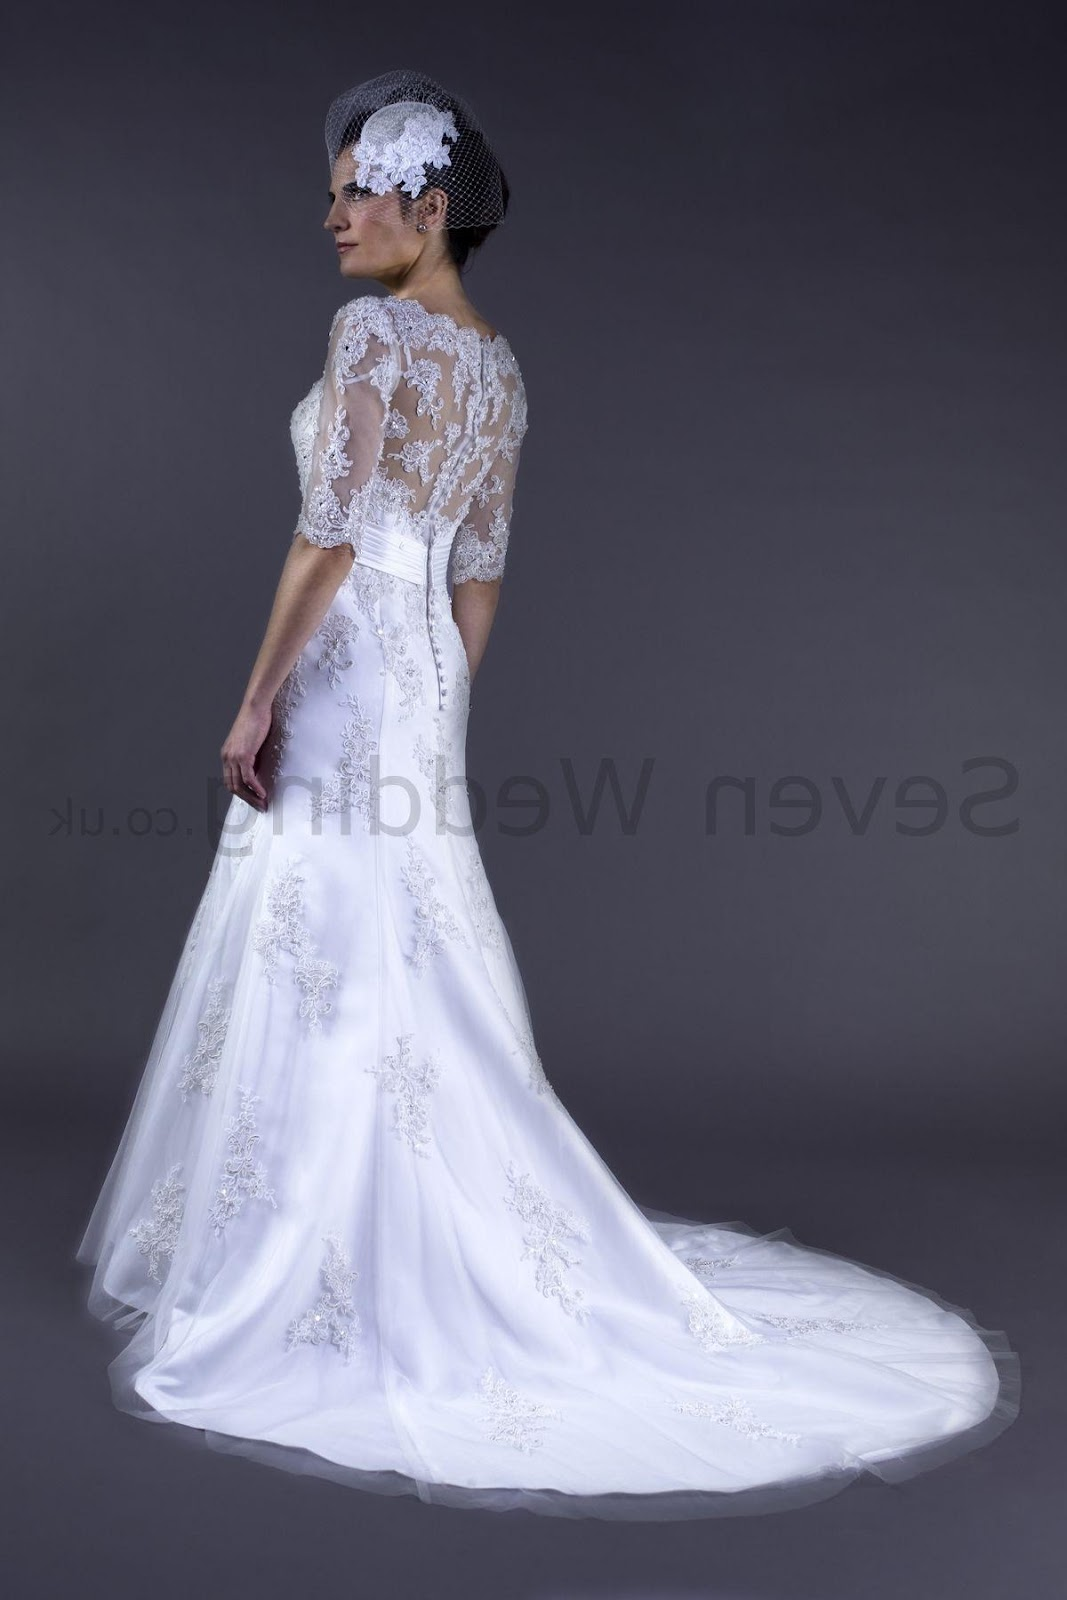 wedding dresses with lace overlay high cut wedding dresses